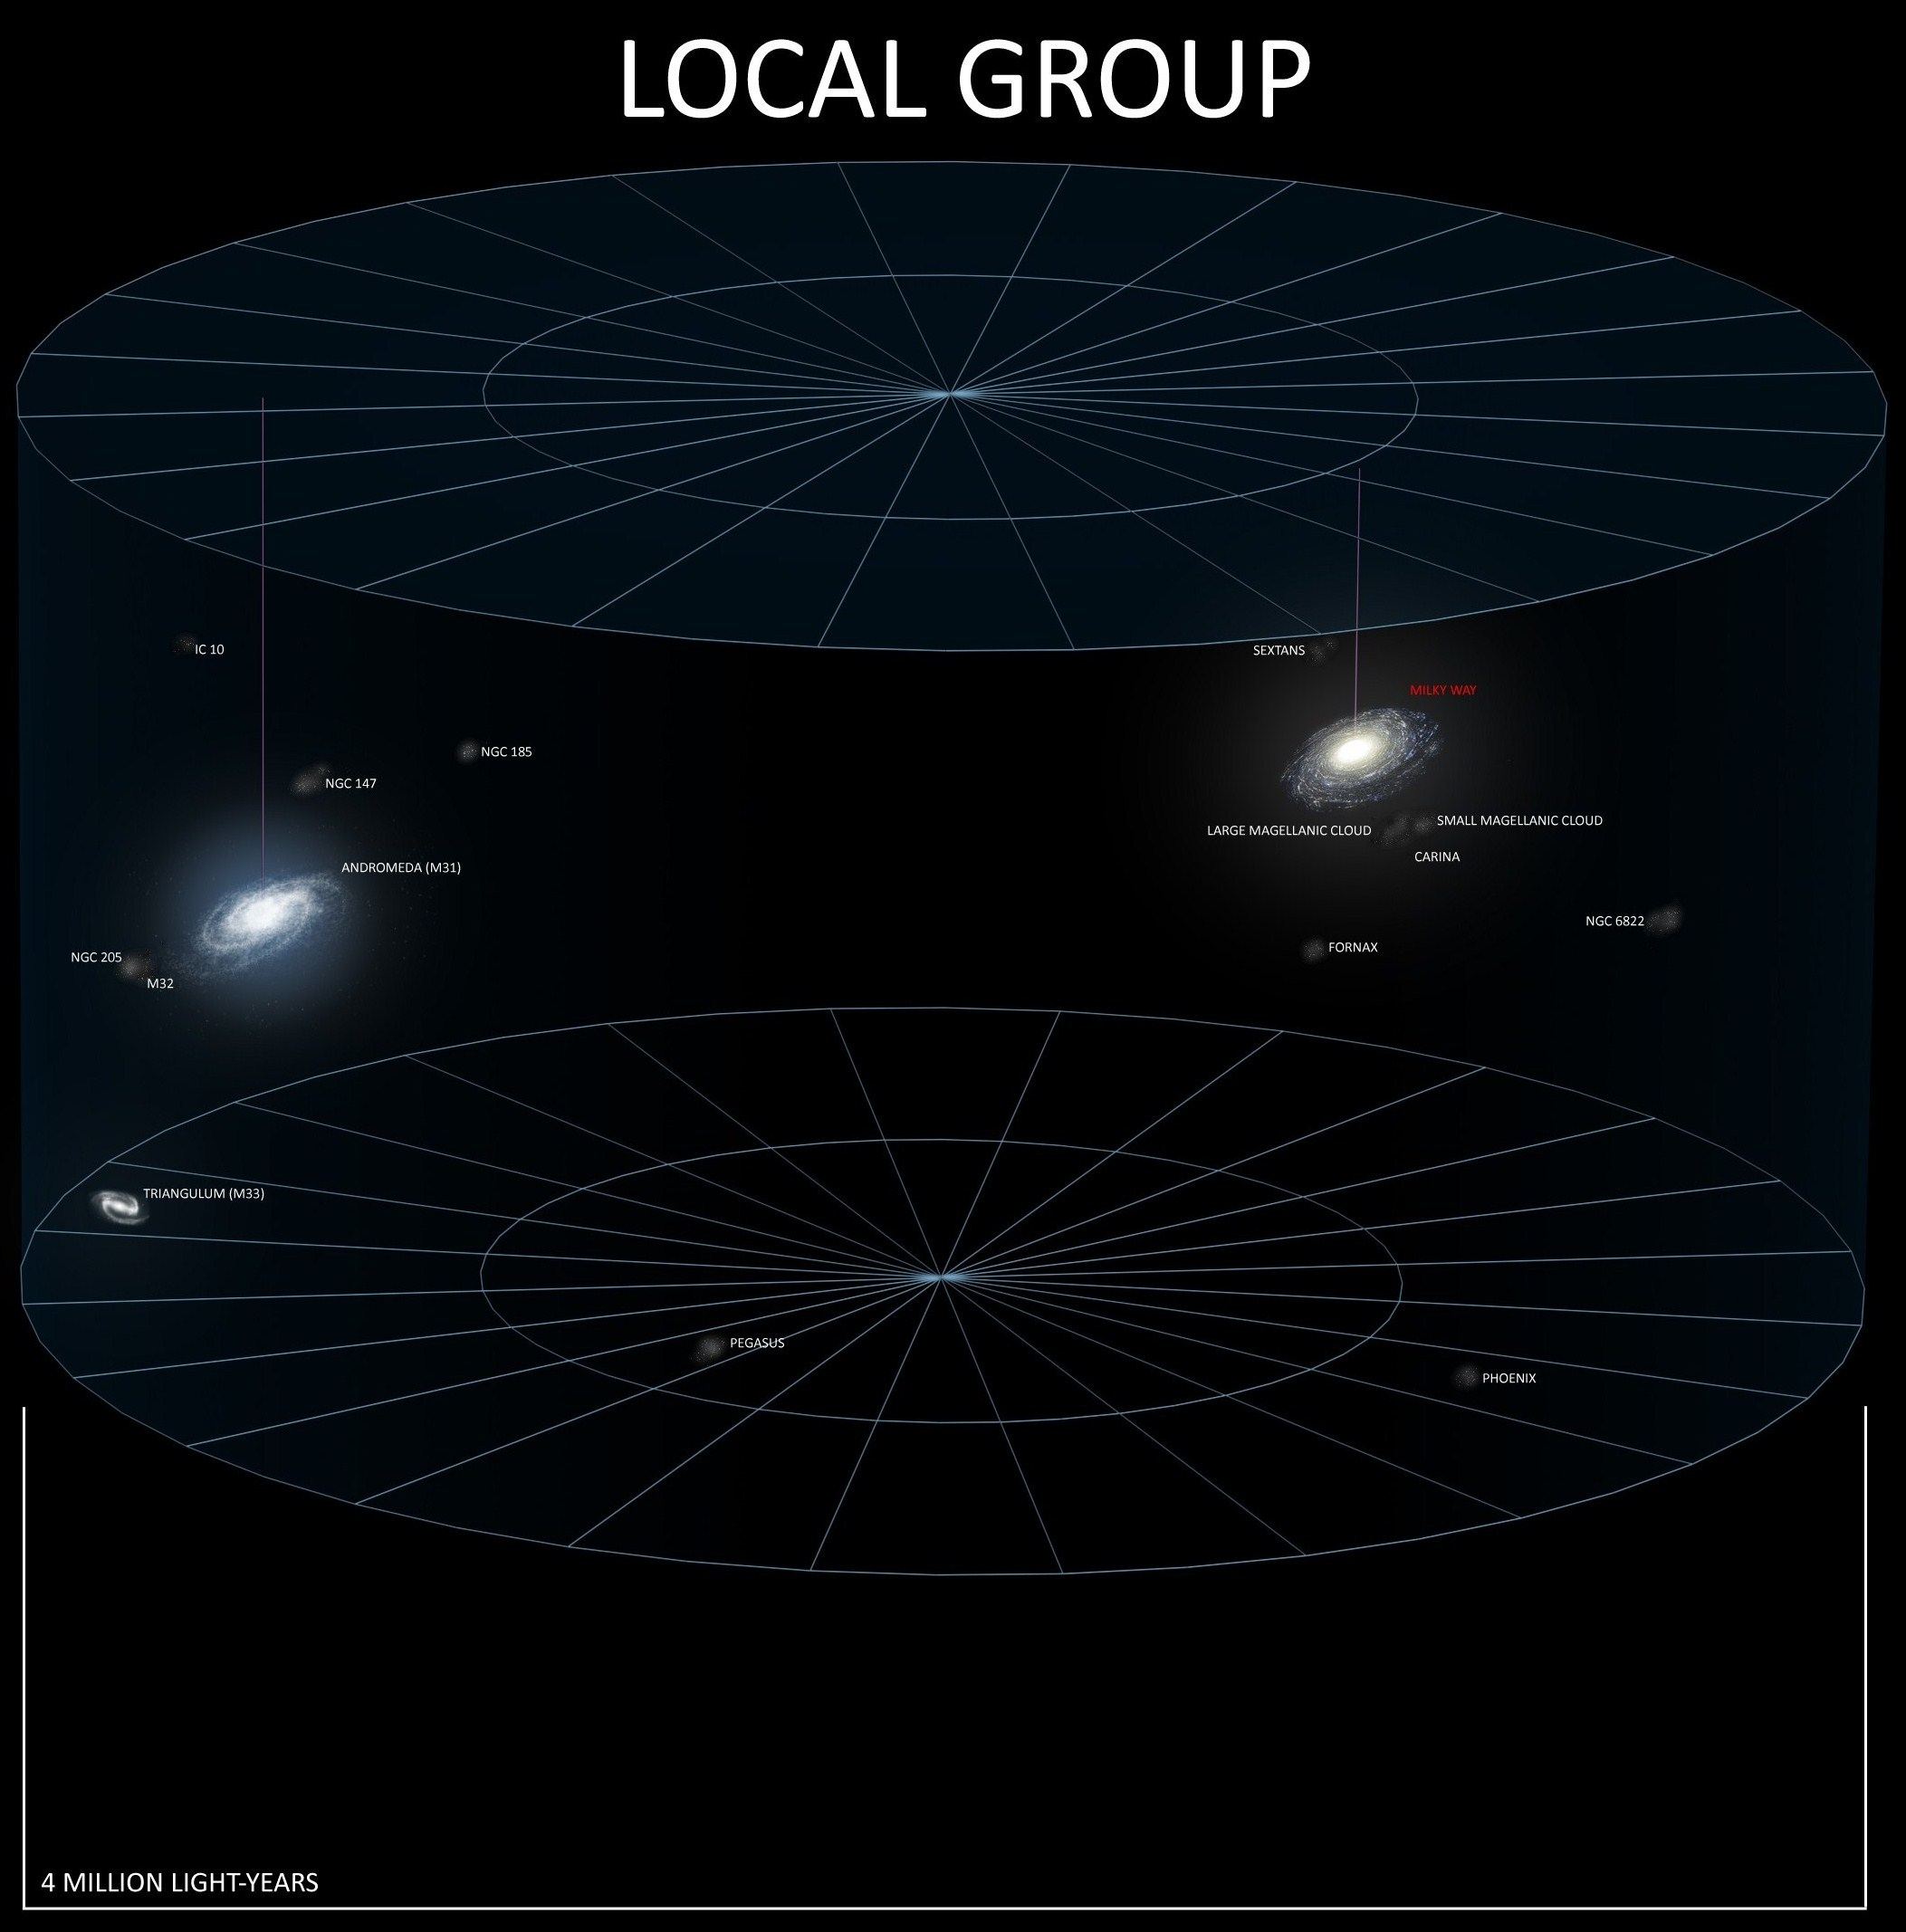 Local Group - Andromeda Wiki - The New Systems Commonwealth